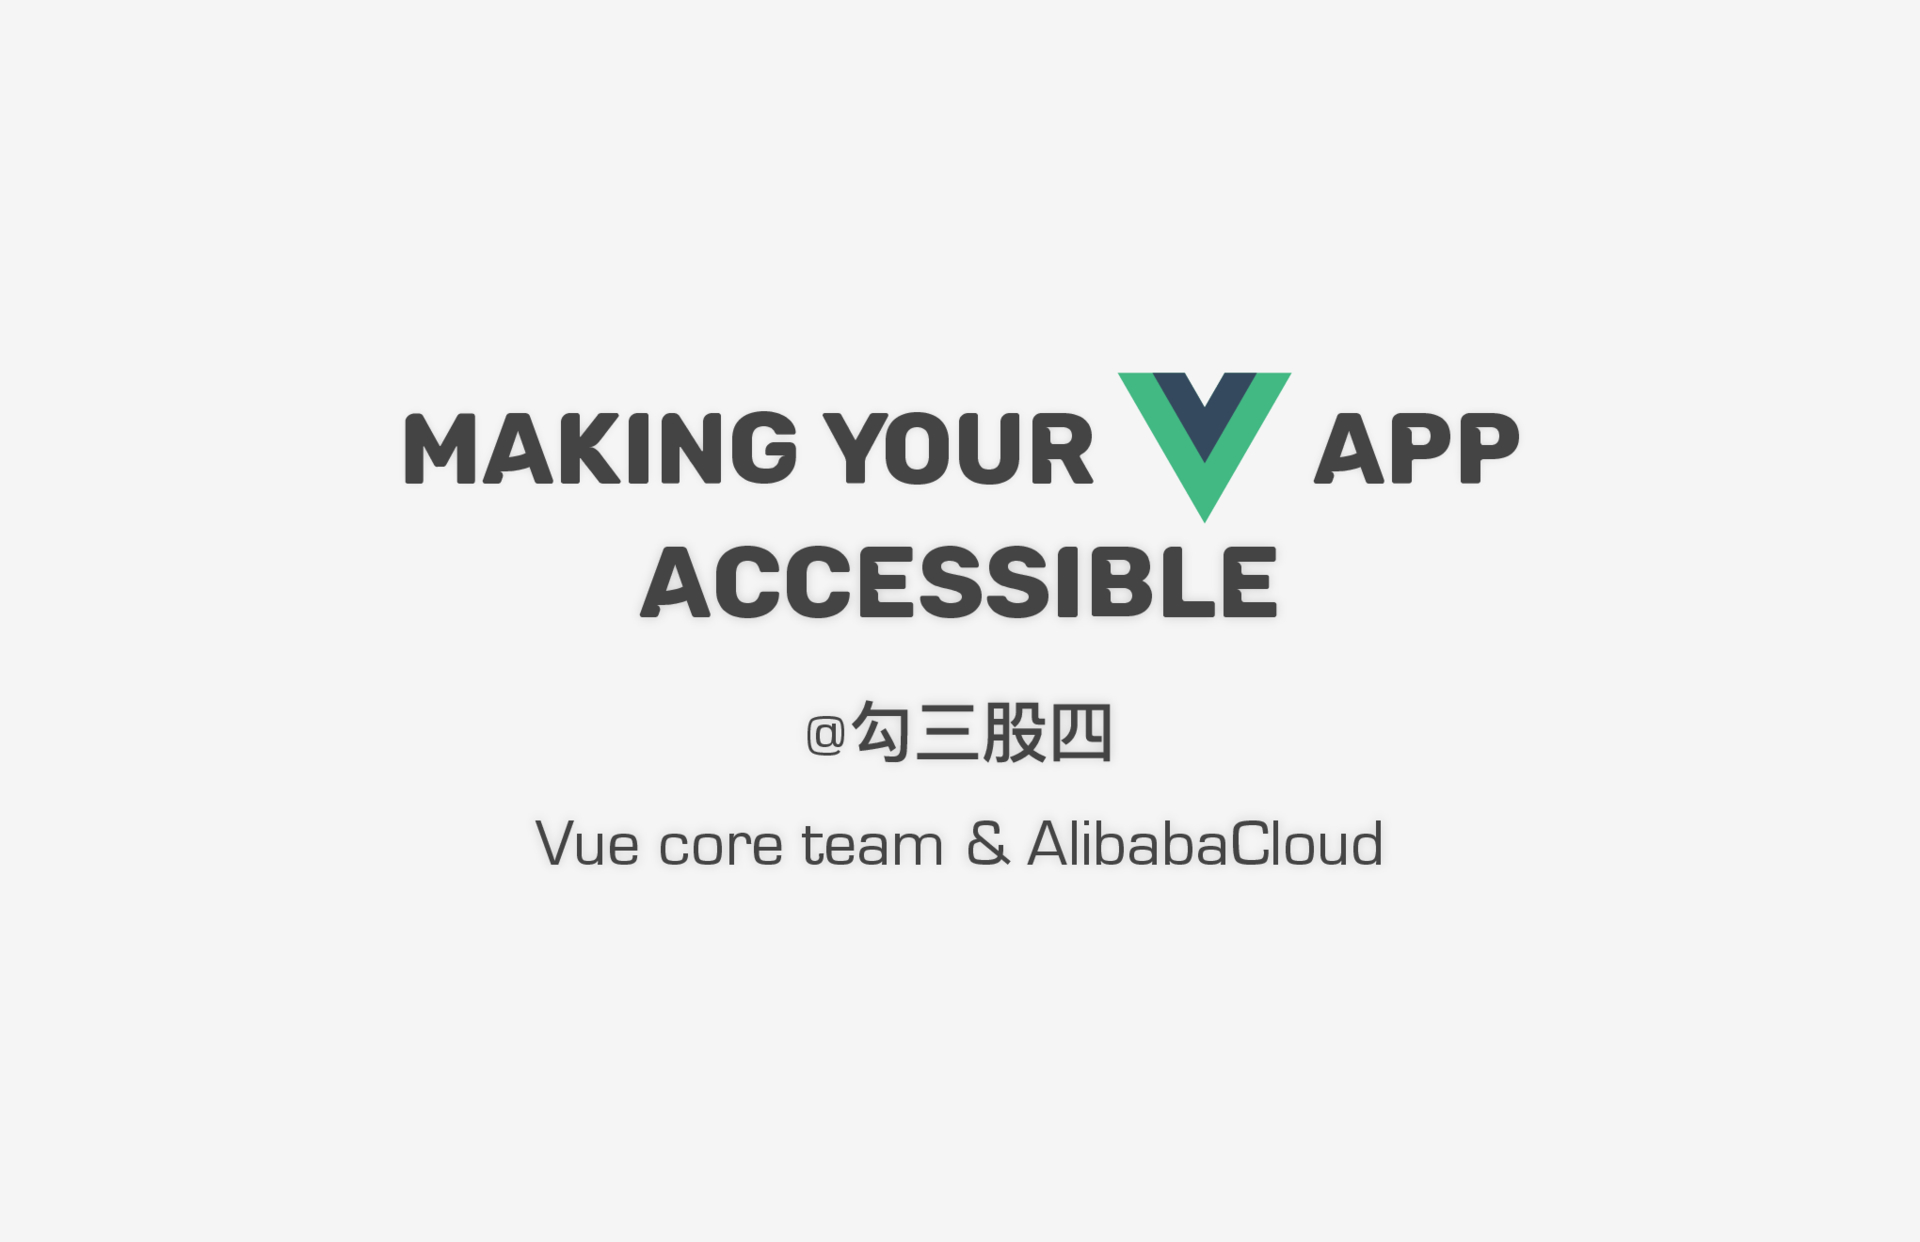 Making-You-Vue-App-Accessible